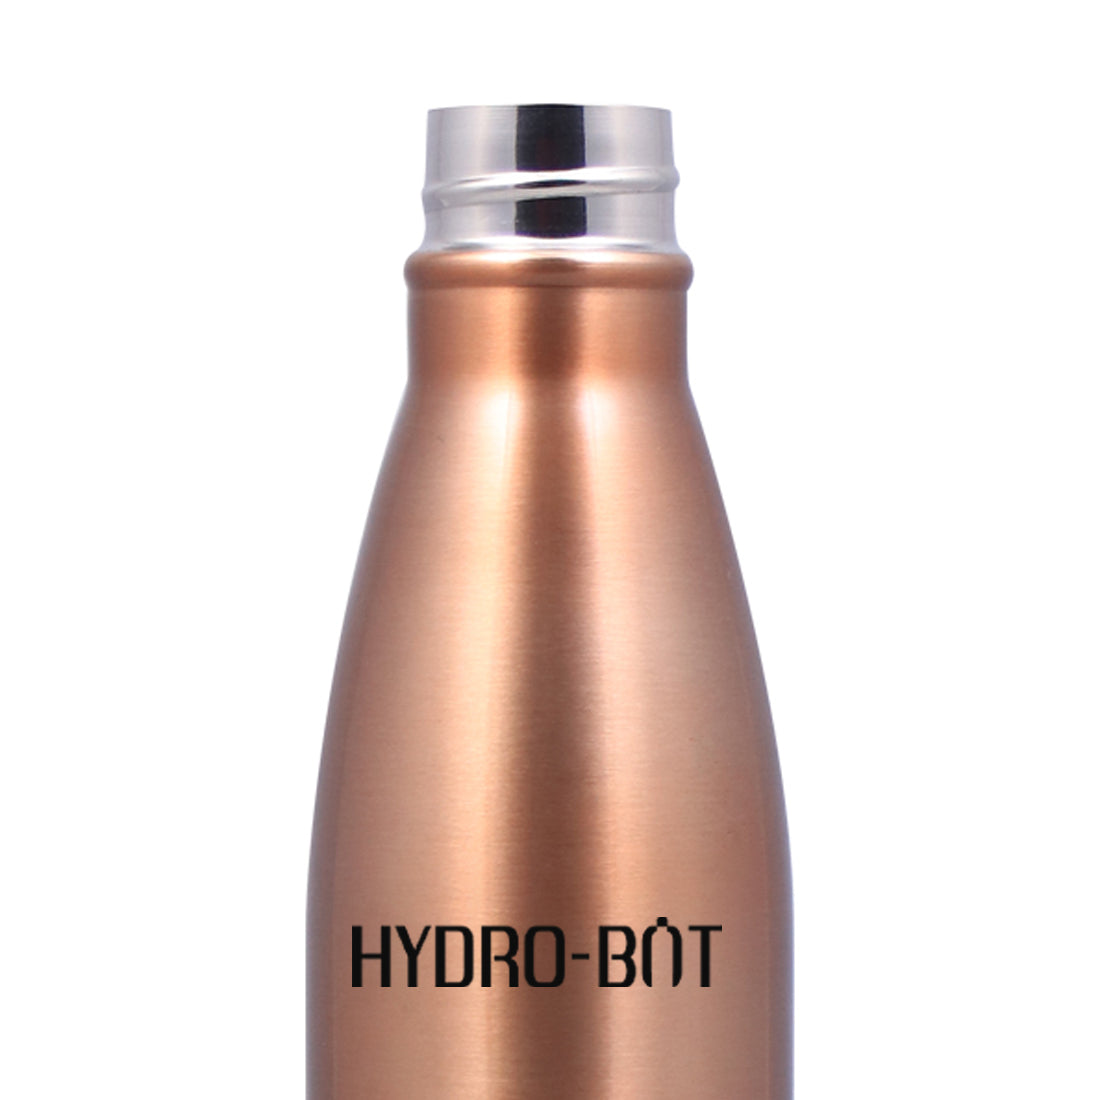 Hydro-Bot Stainless Steel Single Wall Water Bottle